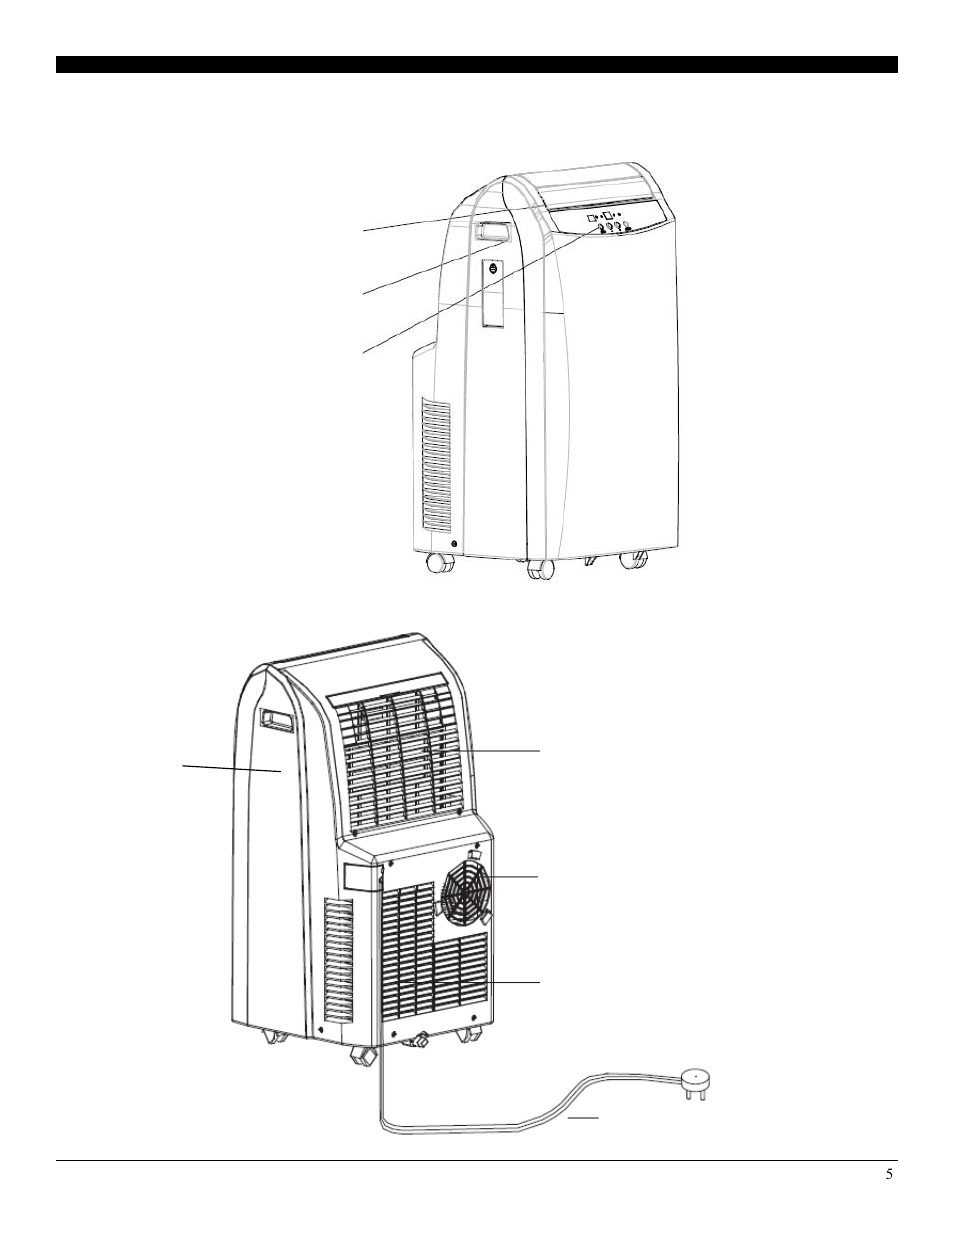 hight resolution of soleus air wiring diagram wiring diagram technic product diagram soleus air 12 user manual page 5